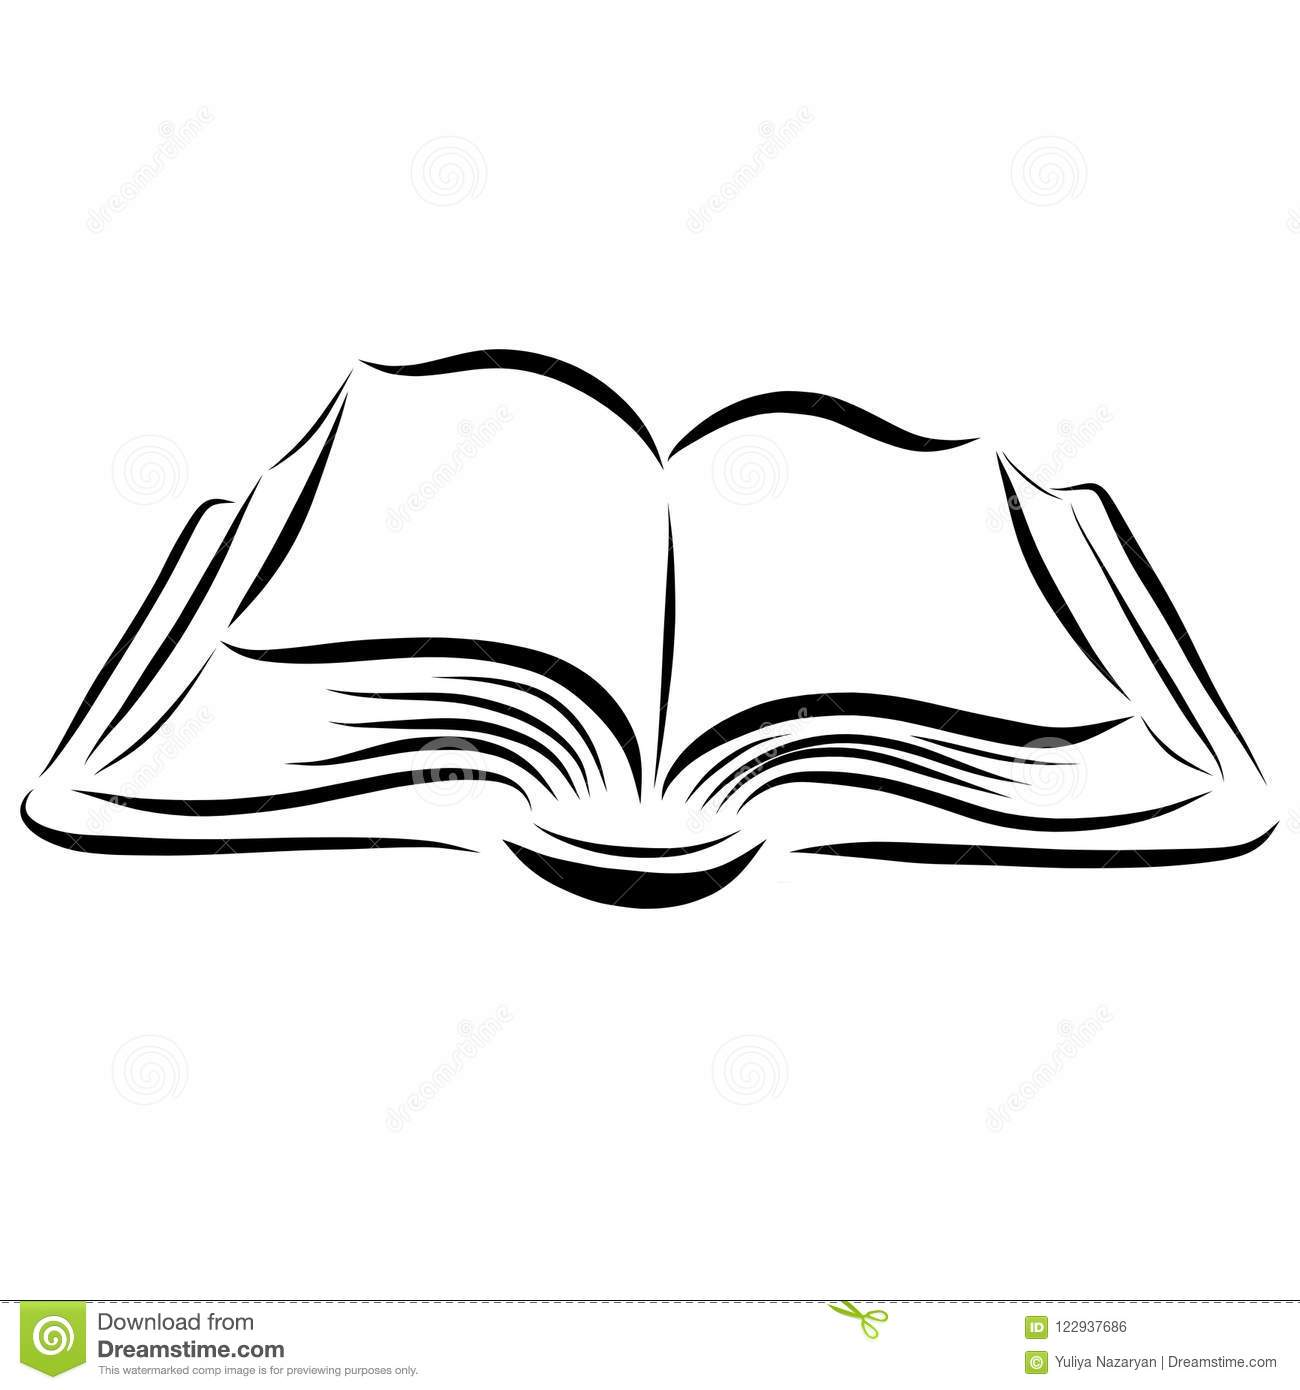 Drawing Smooth Lines Reviews : Open book drawn with smooth lines stock illustration